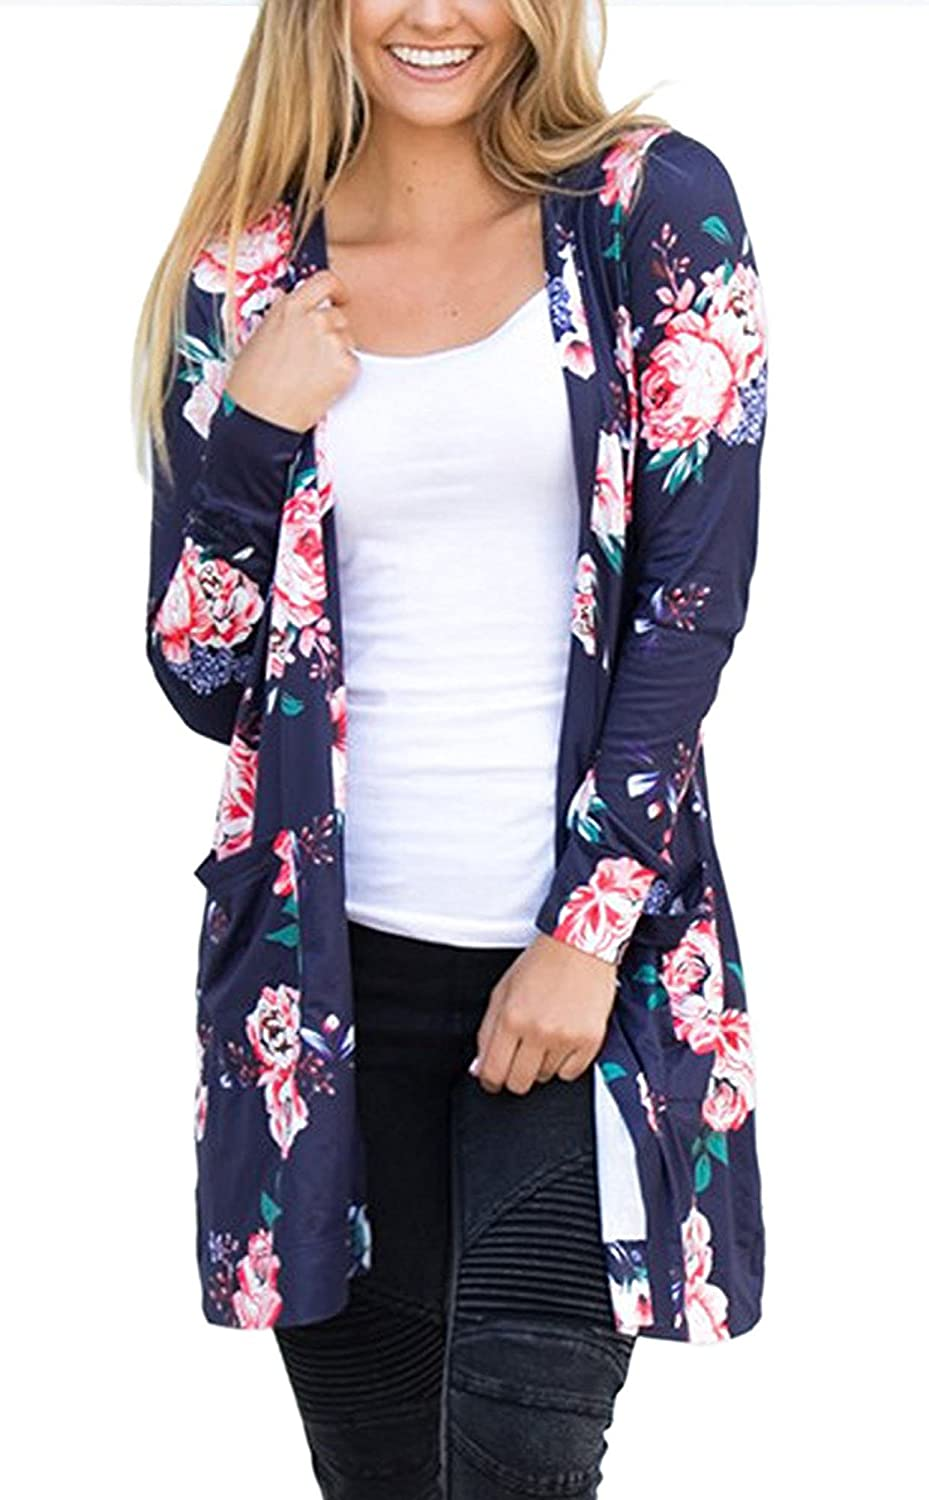 Elevesee Womens Long Sleeve Wrap Kimono Cardigans Casual Coverup Coat Tops Outwear